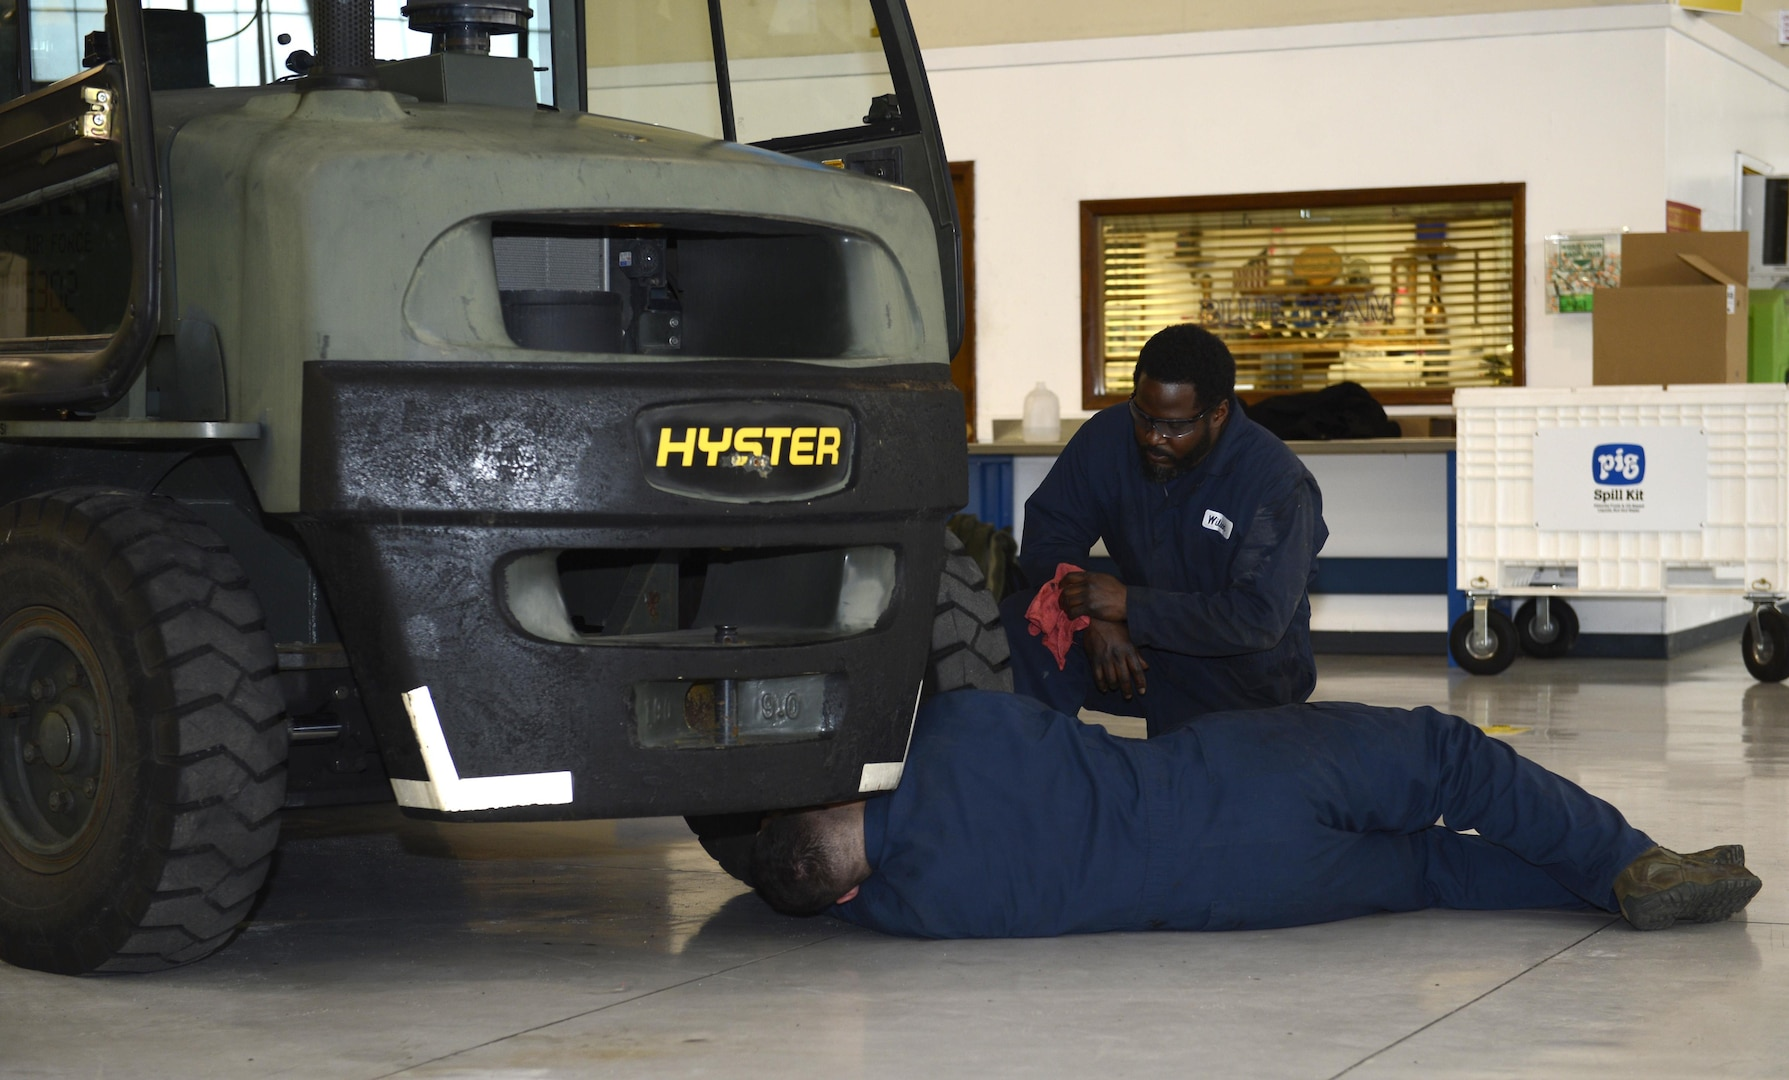 Walter Wilson and U.S. Air Force Airman 1st Class Nicholas Imber, 733rd Logistics Readiness Squadron vehicle maintainers, use a grease gun to squeeze bio-based grease into a forklift carriage at Joint Base Langley-Eustis, Va., Jan. 31, 2017. JBLE is one of four Air Force bases that will perform a 12-month long test of the grease on its vehicles. (U.S. Air Force photo by Airman 1st Class Kaylee Dubois)